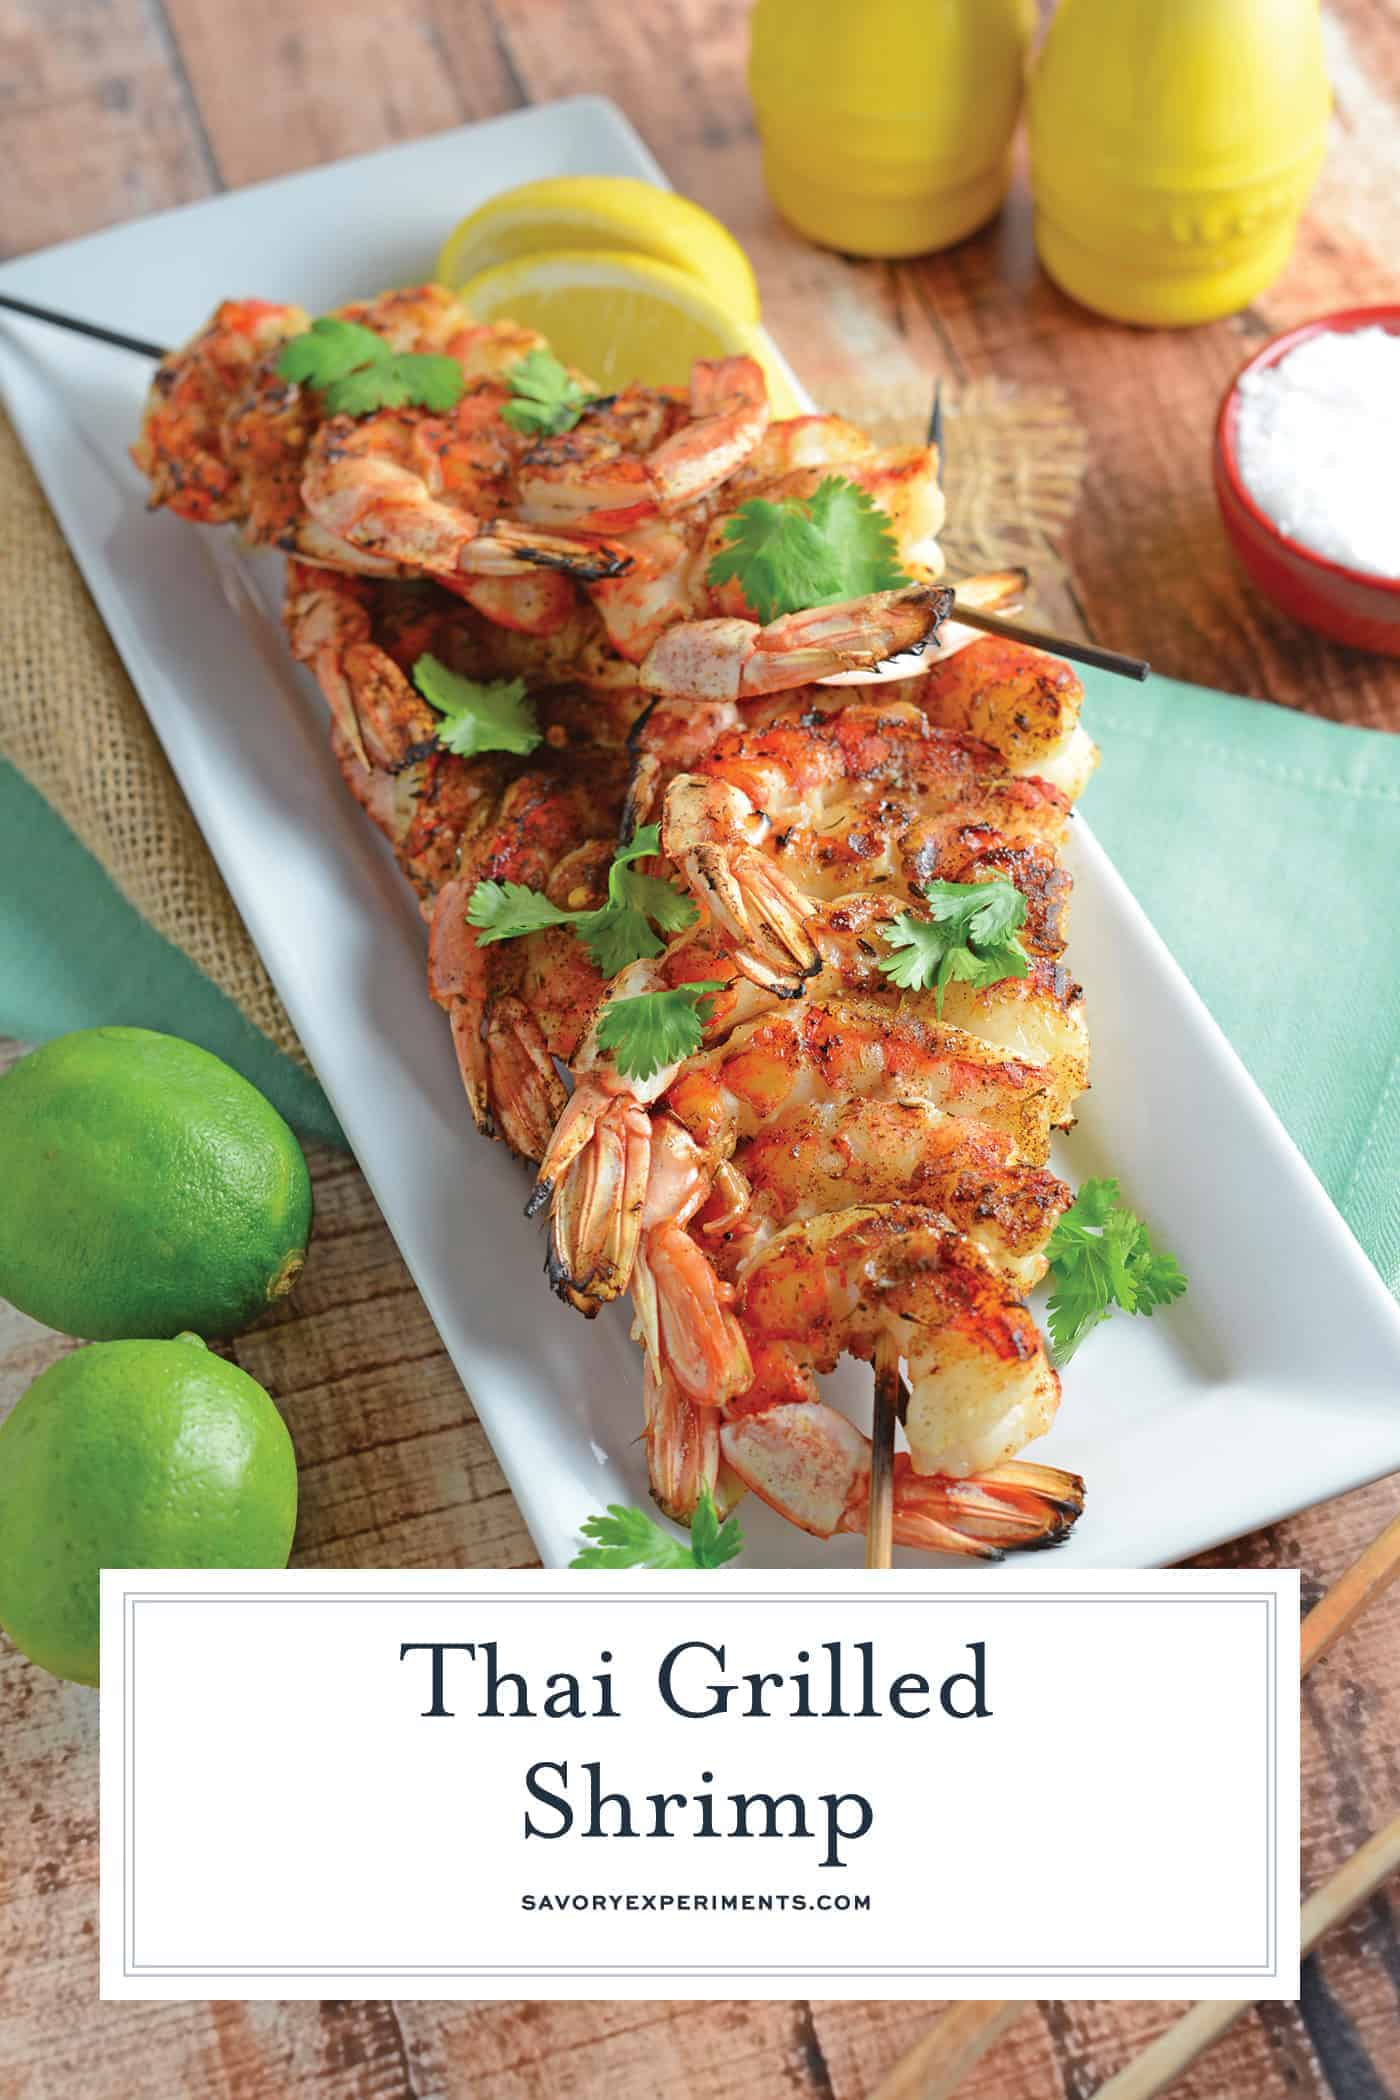 Thai Grilled Shrimp is an easy and healthy dinner idea, using light coconut milk, Thai seasoning and lime juice, it comes together in a snap! #grilledshrimpskewers #grilledshrimpkabobs www.savoryexperiments.com